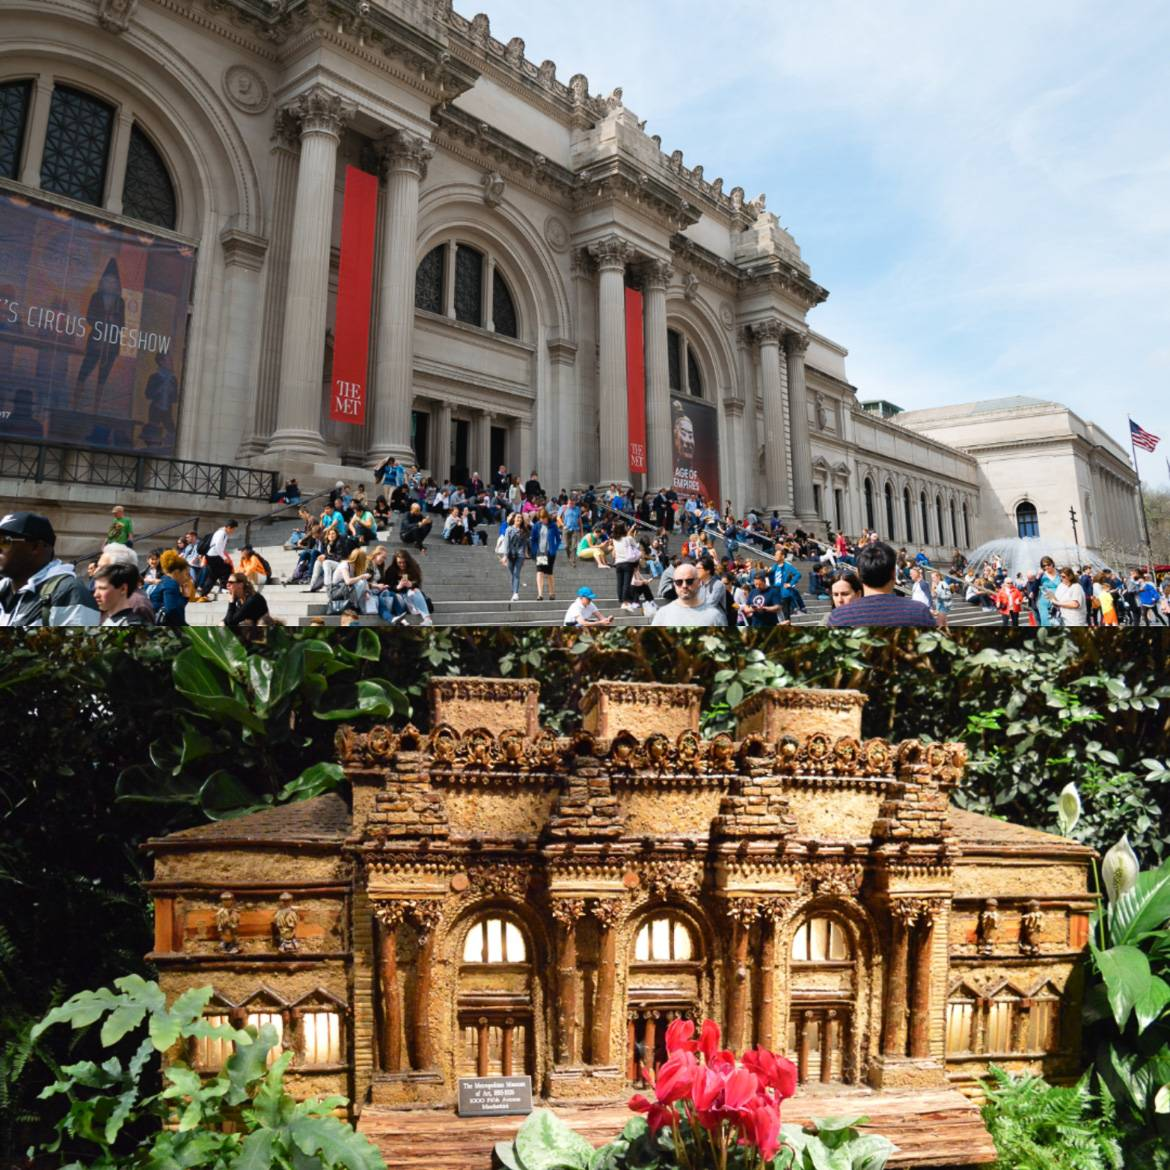 Image of small model of the Metropolitan Museum of Art and Image of people sitting on the steps of the Metropolitan Museum of Art in Manhattan